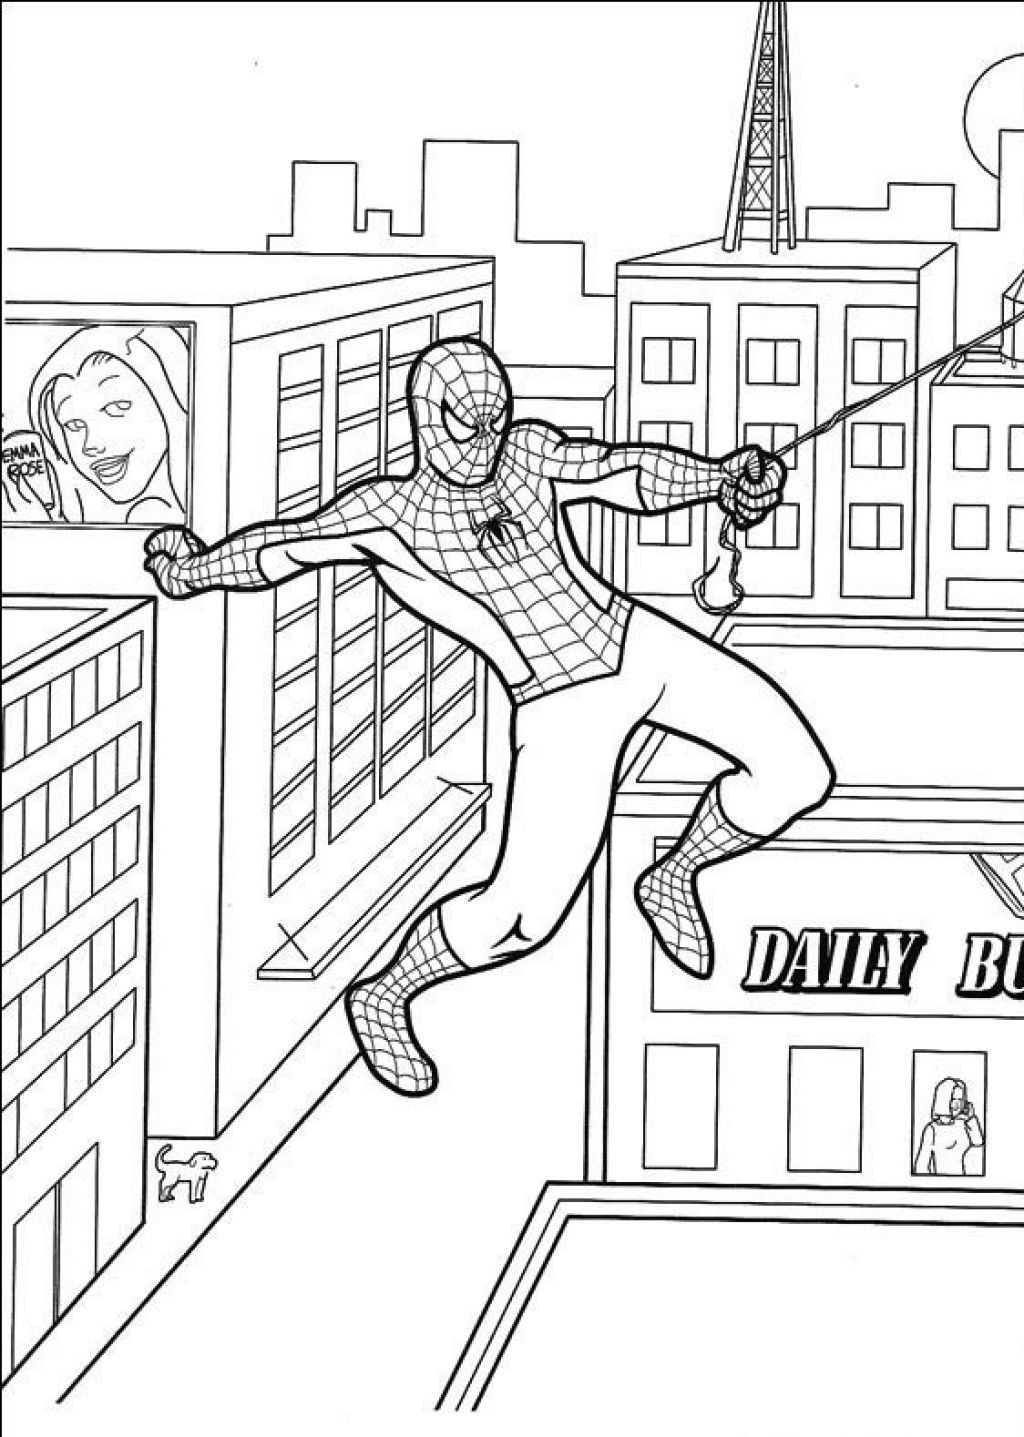 Fr free coloring pages for spiderman - Printable Spiderman Coloring Pages Colorist Pinterest Coloring Spiderman And Coloring Pages